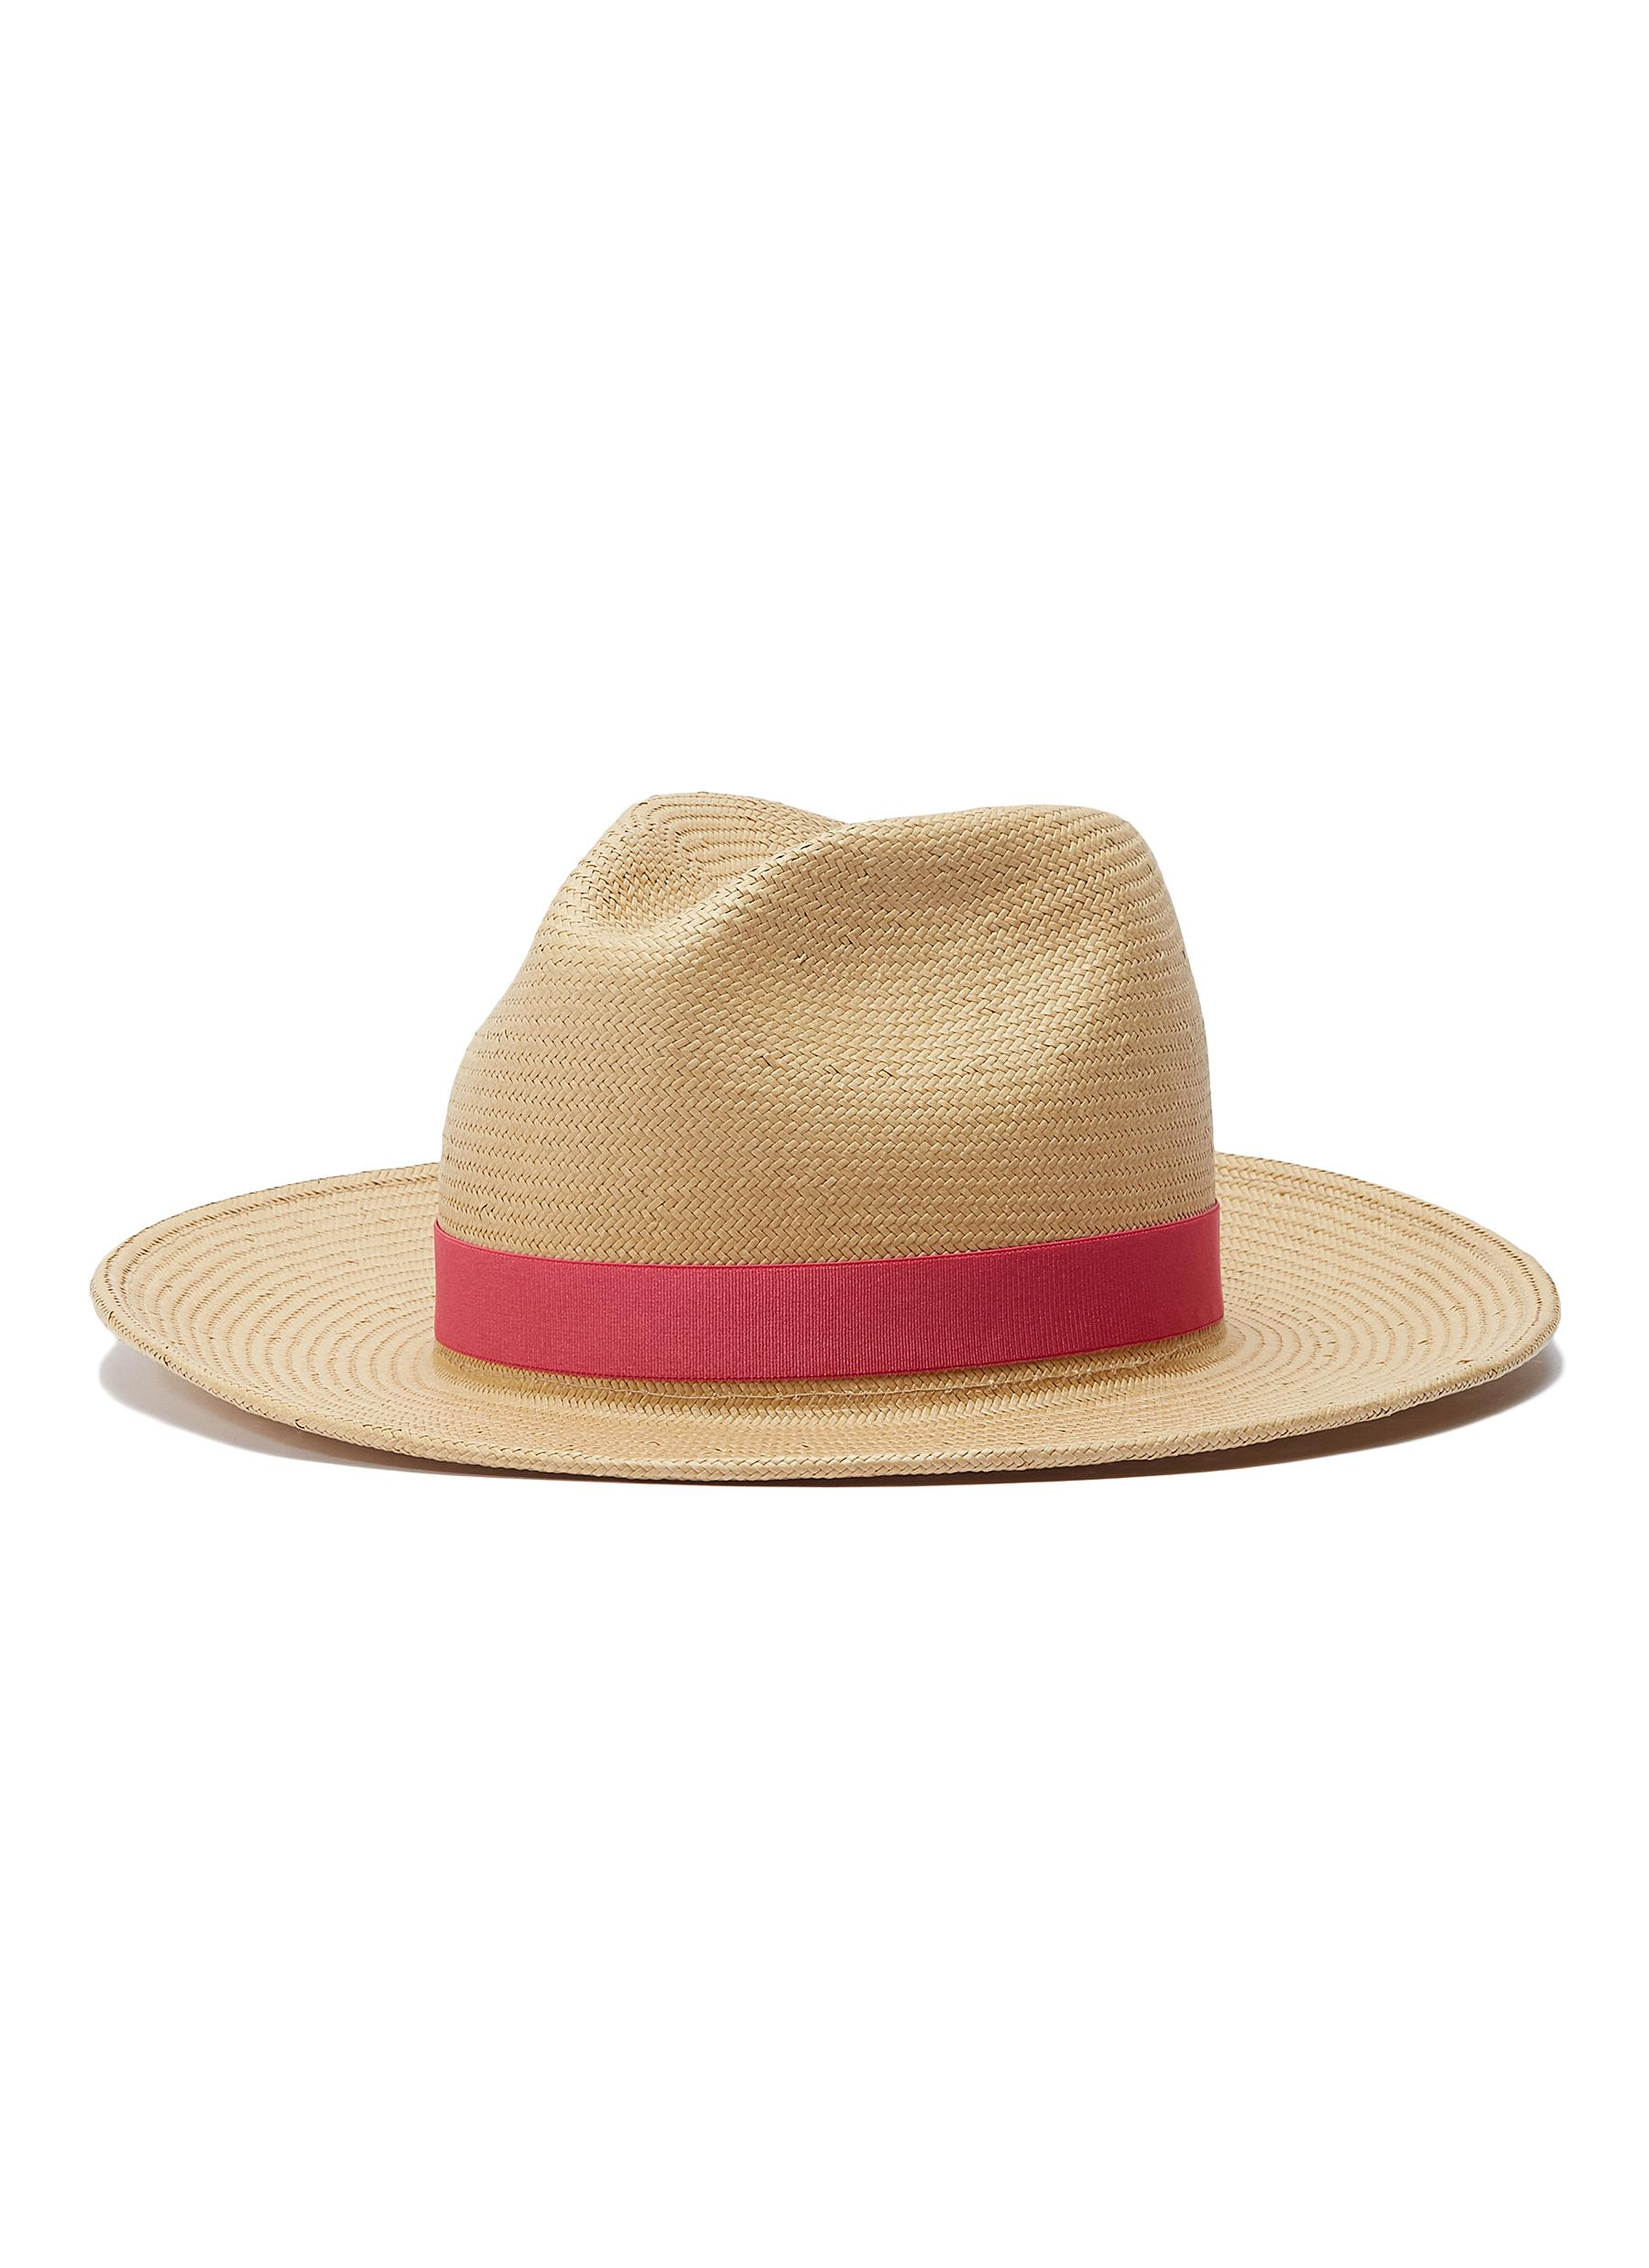 b8eb3653f5197f Main View - Click To Enlarge - YESTADT - 'Nomad' packable straw fedora hat